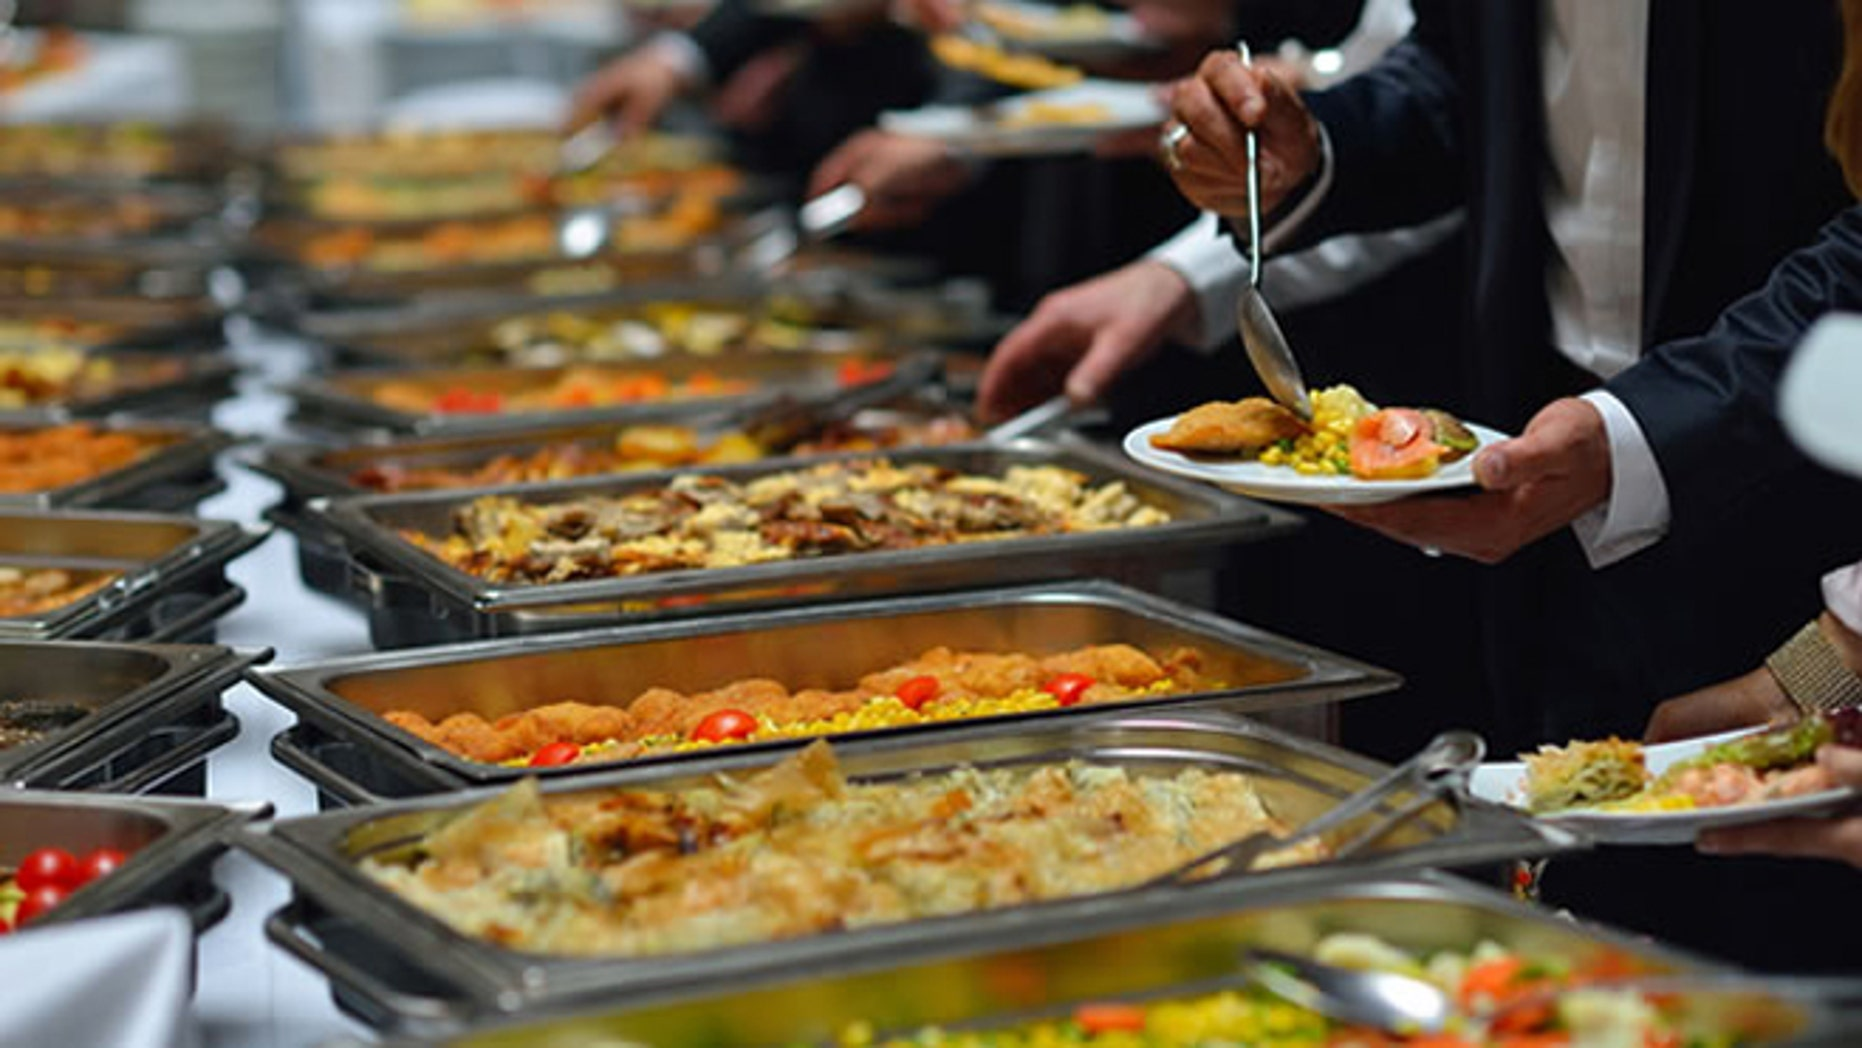 Muslim cleric, Saleh al-Fawzan, issued a fatwa against eating at all-you-can-eat buffets.